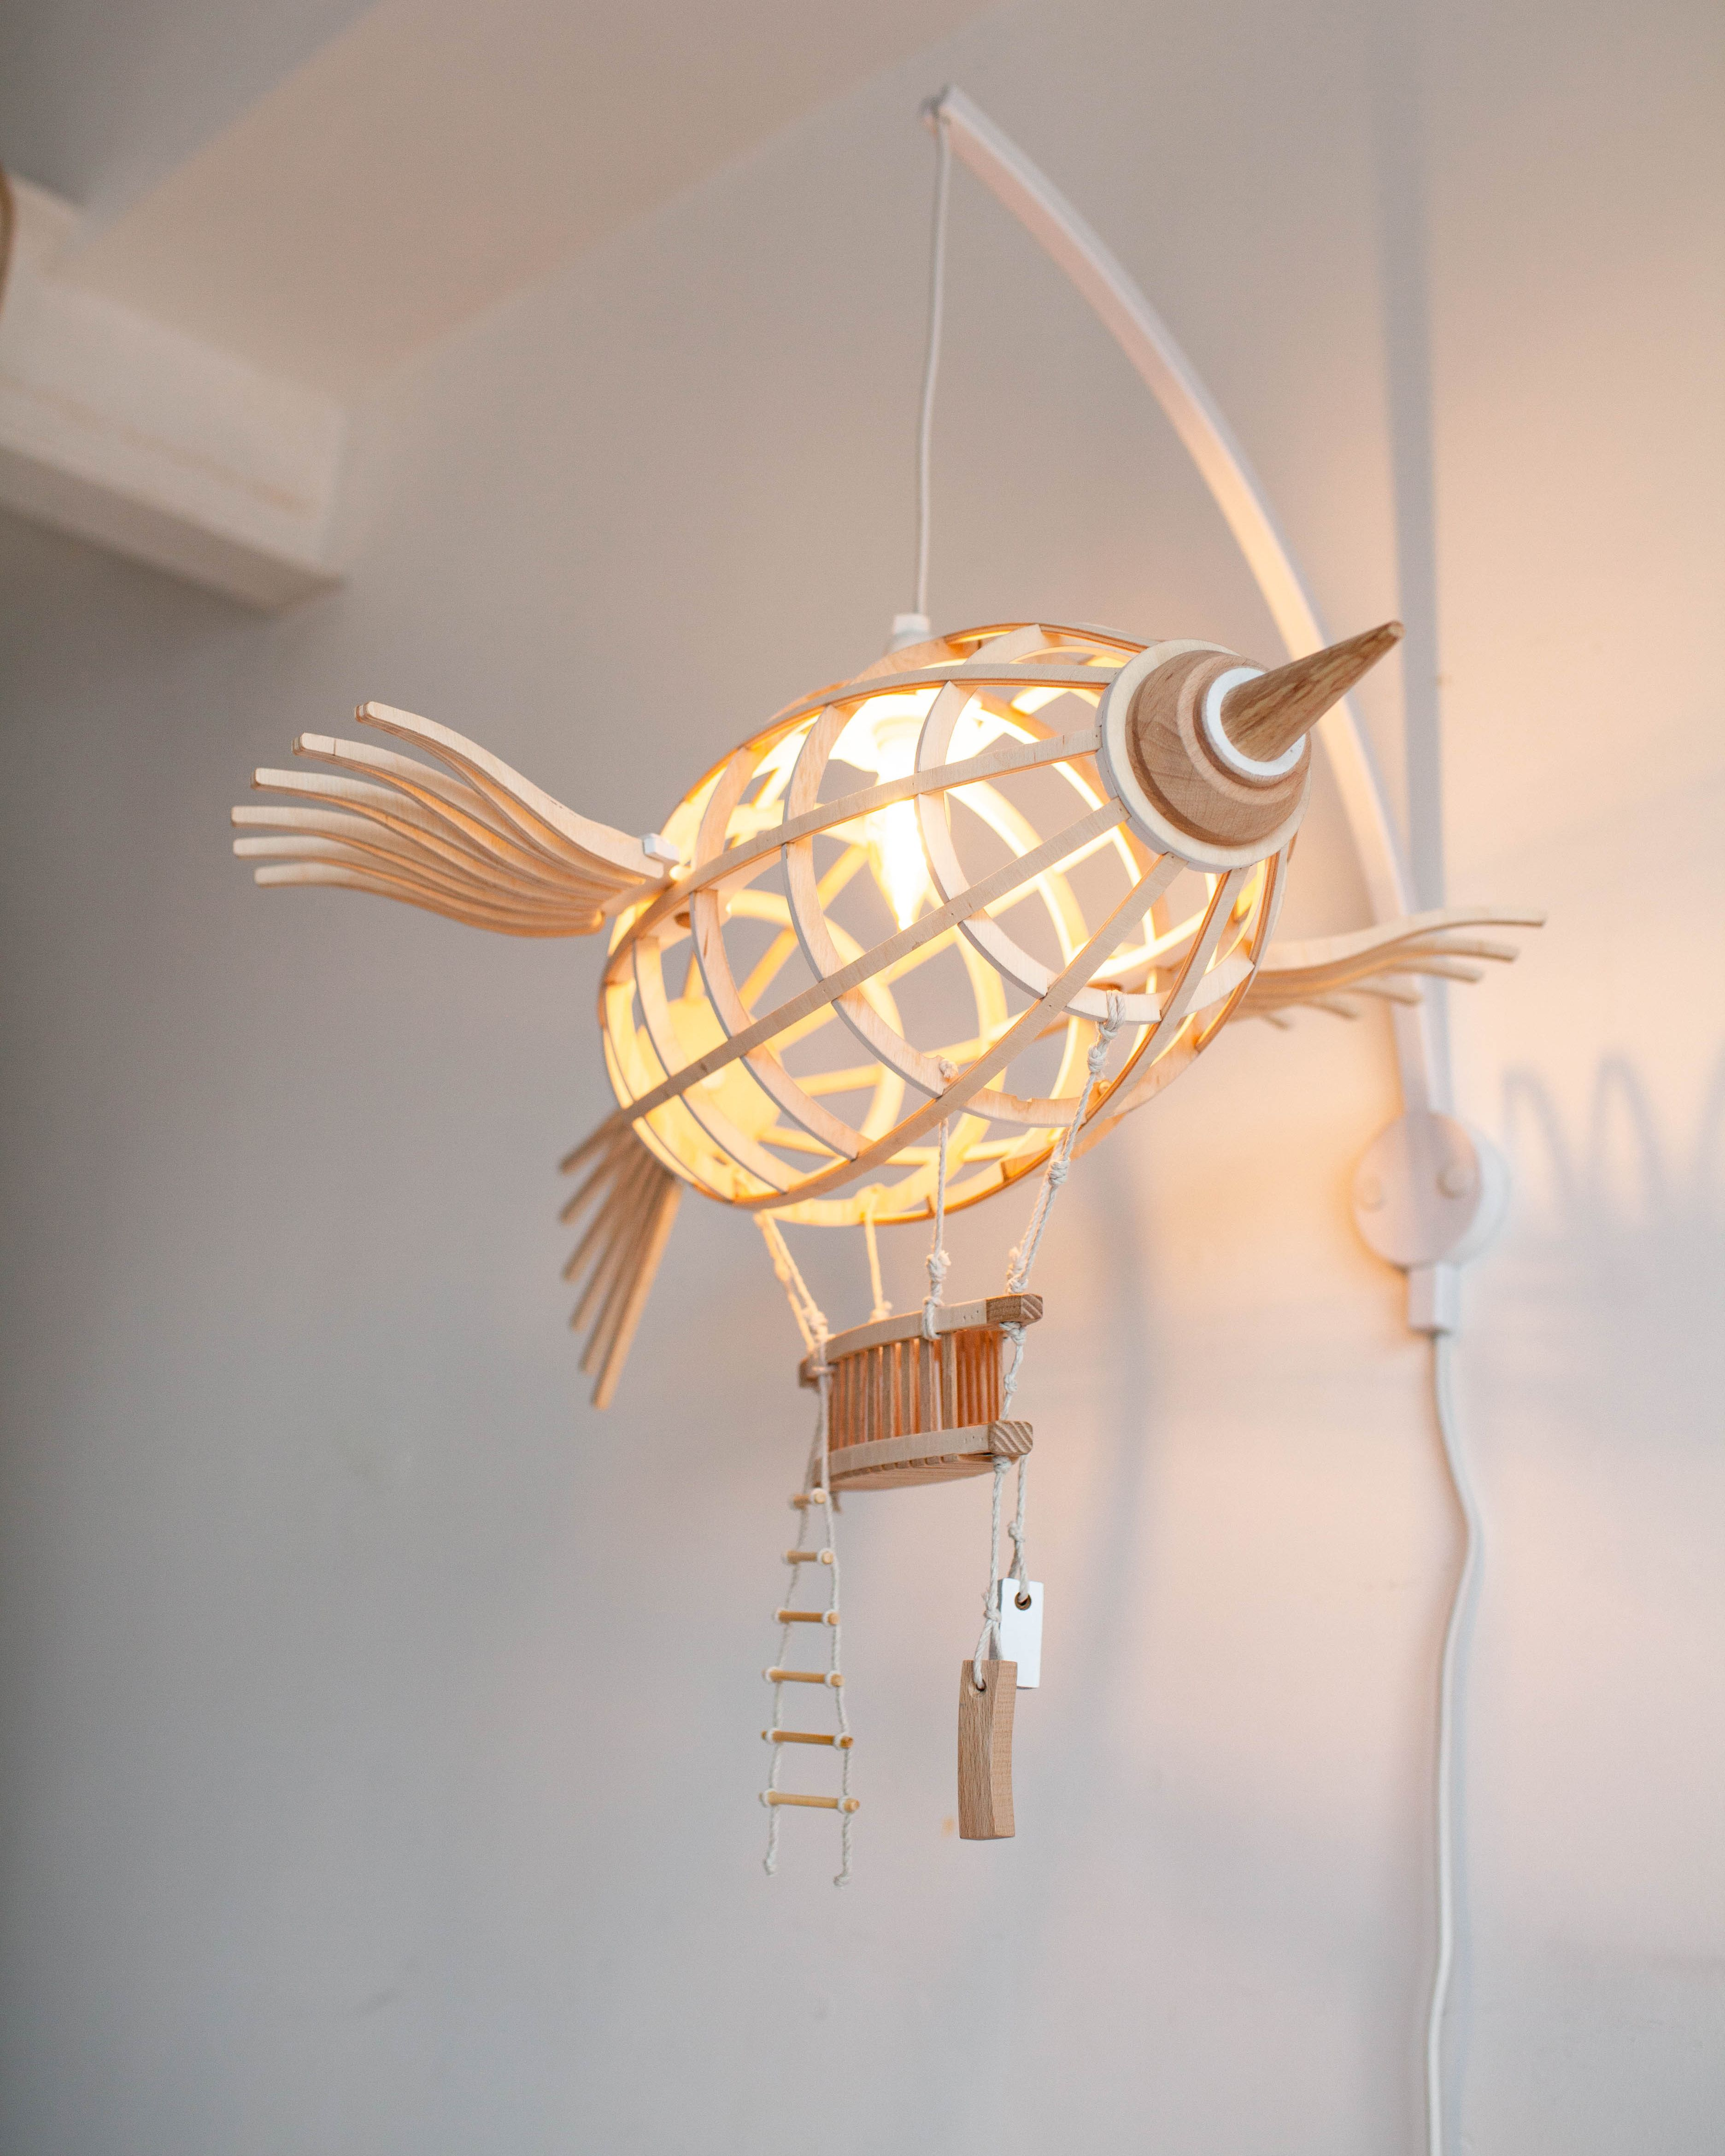 Pin By Mererid Thomas On Interiors With Images Lamp Wooden Brackets Flying Ship